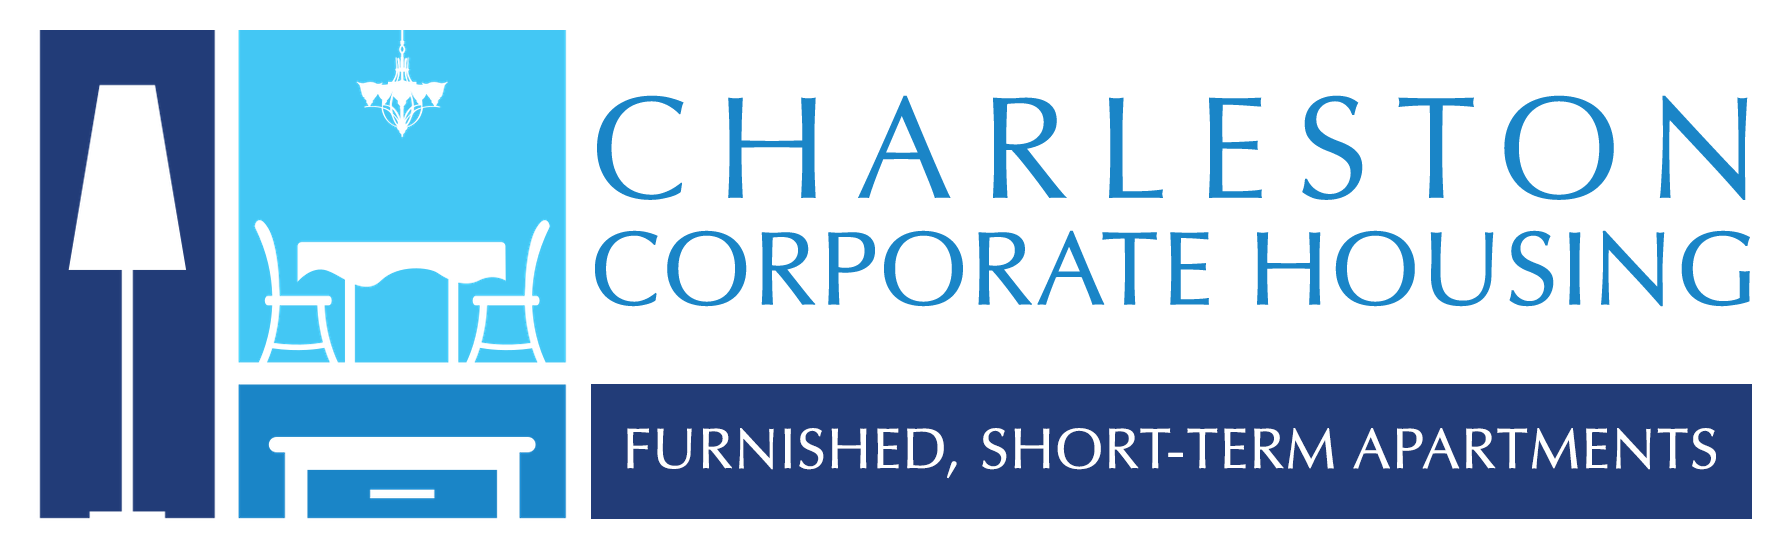 Charleston Corporate Housing, LLC